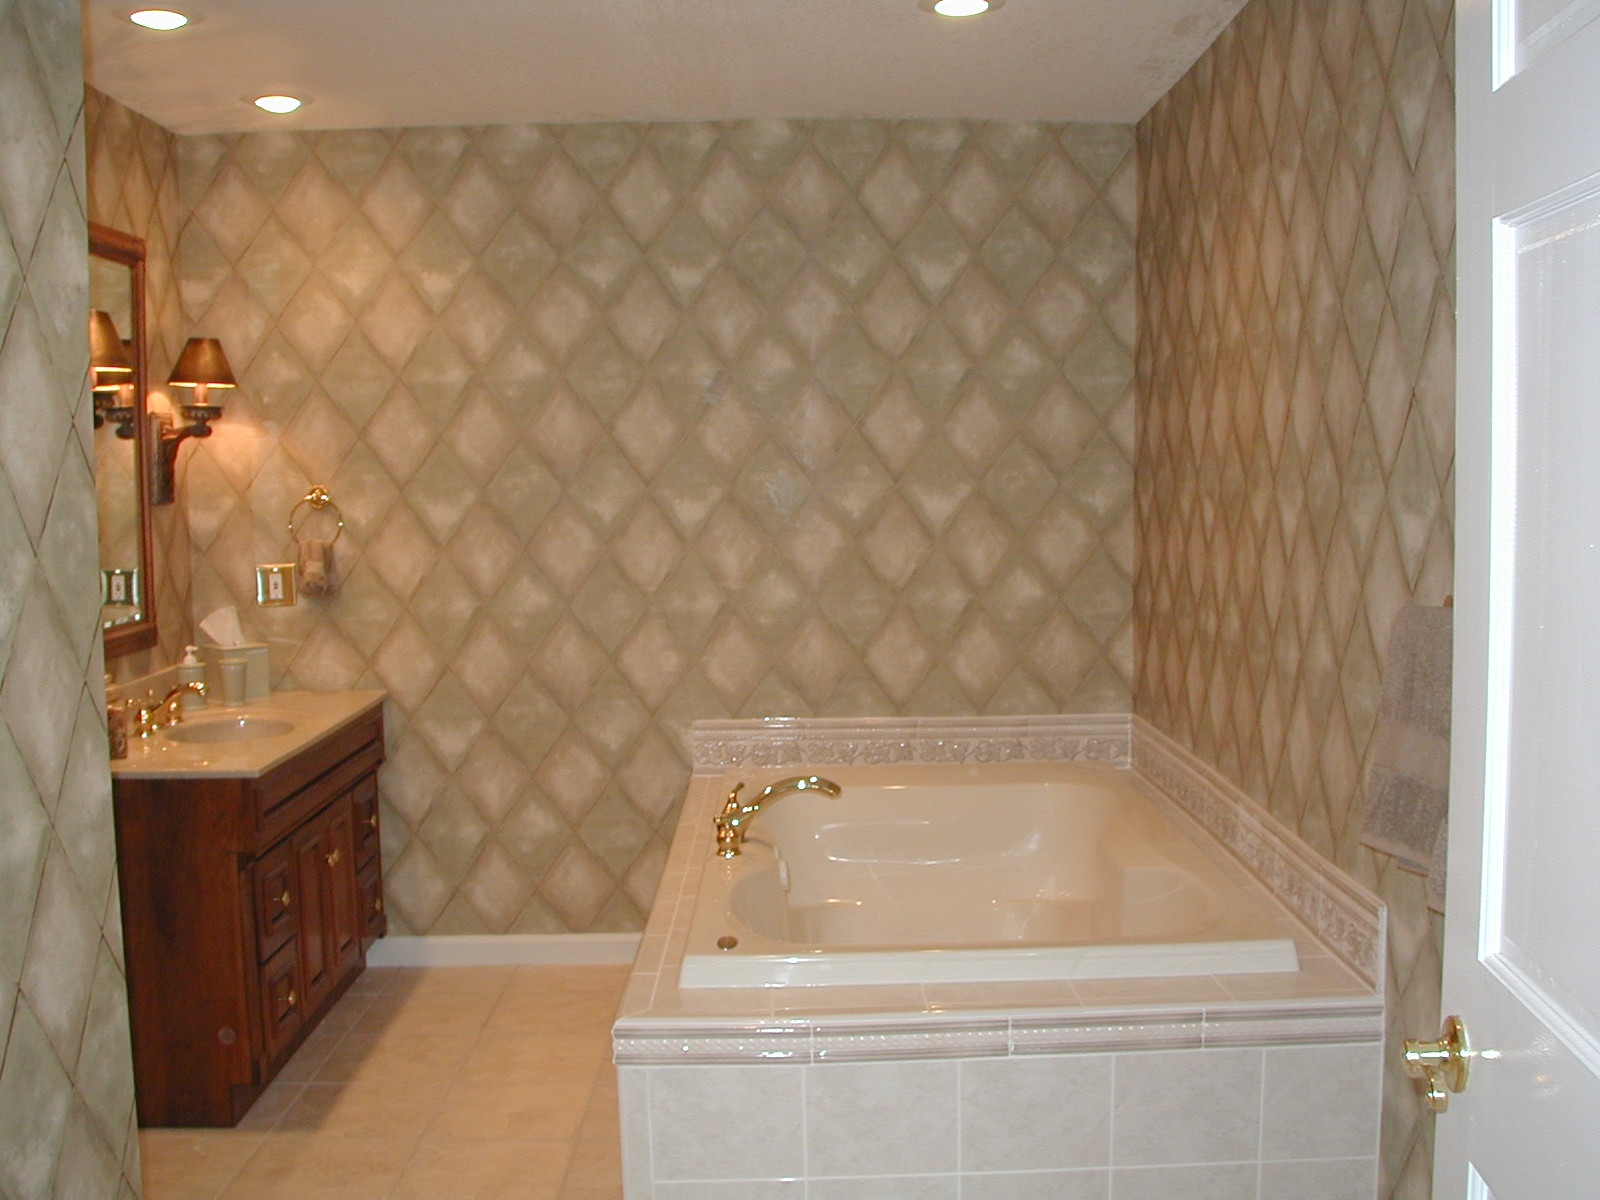 Diy bathroom wall tile ideas custom home design for Bathroom design ideas mosaic tiles